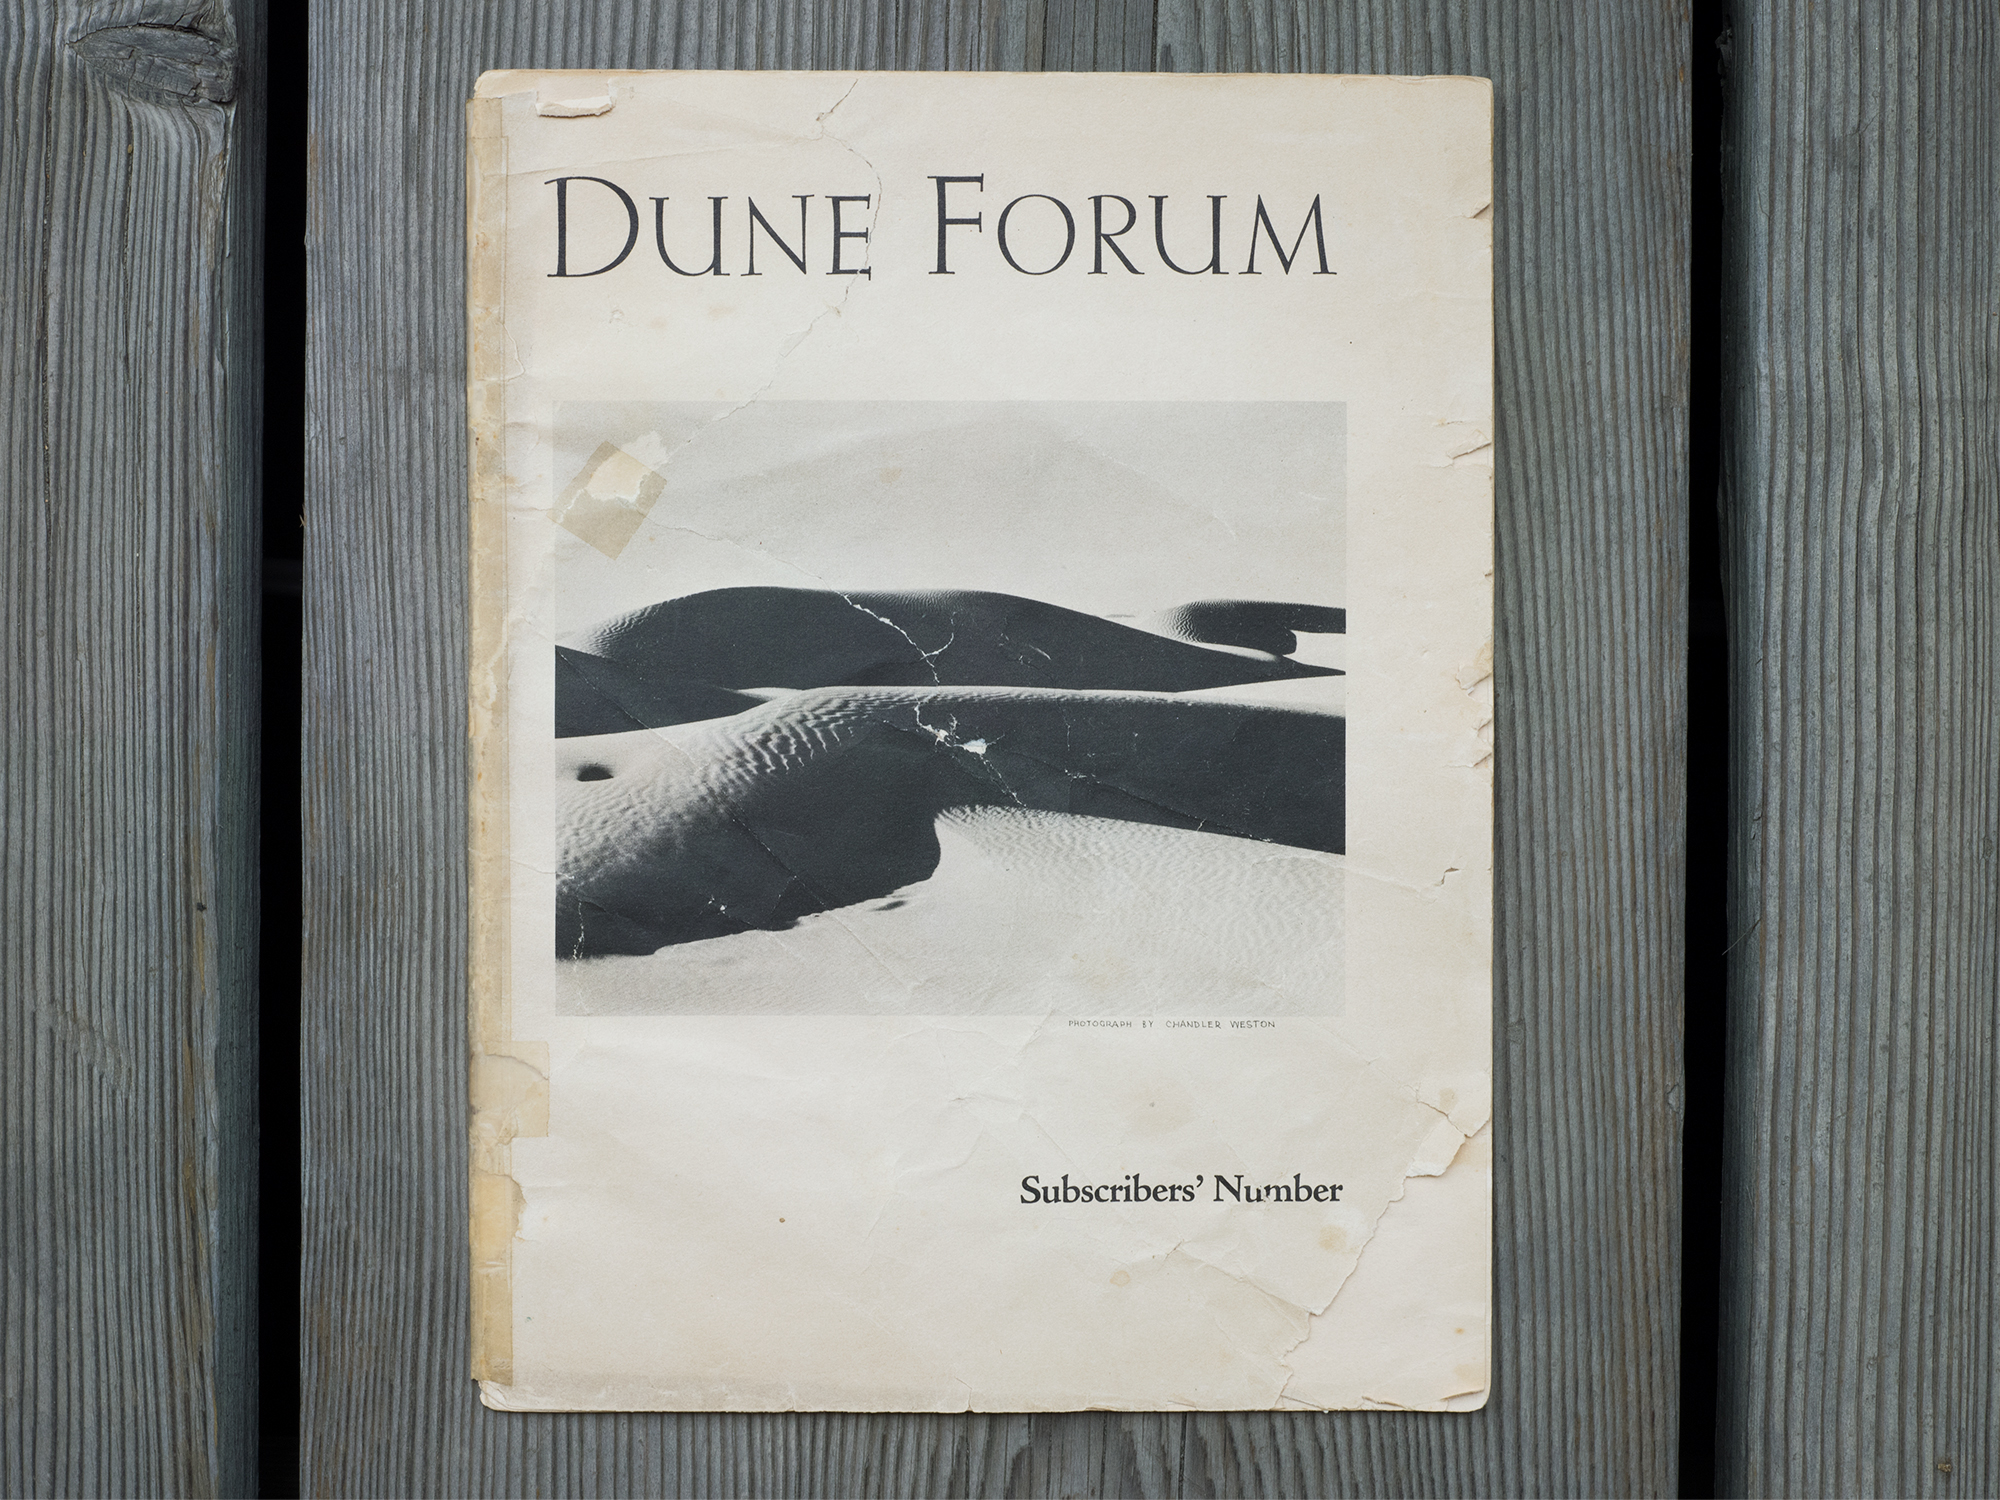 Forth Issue of Dune Forum, 1933